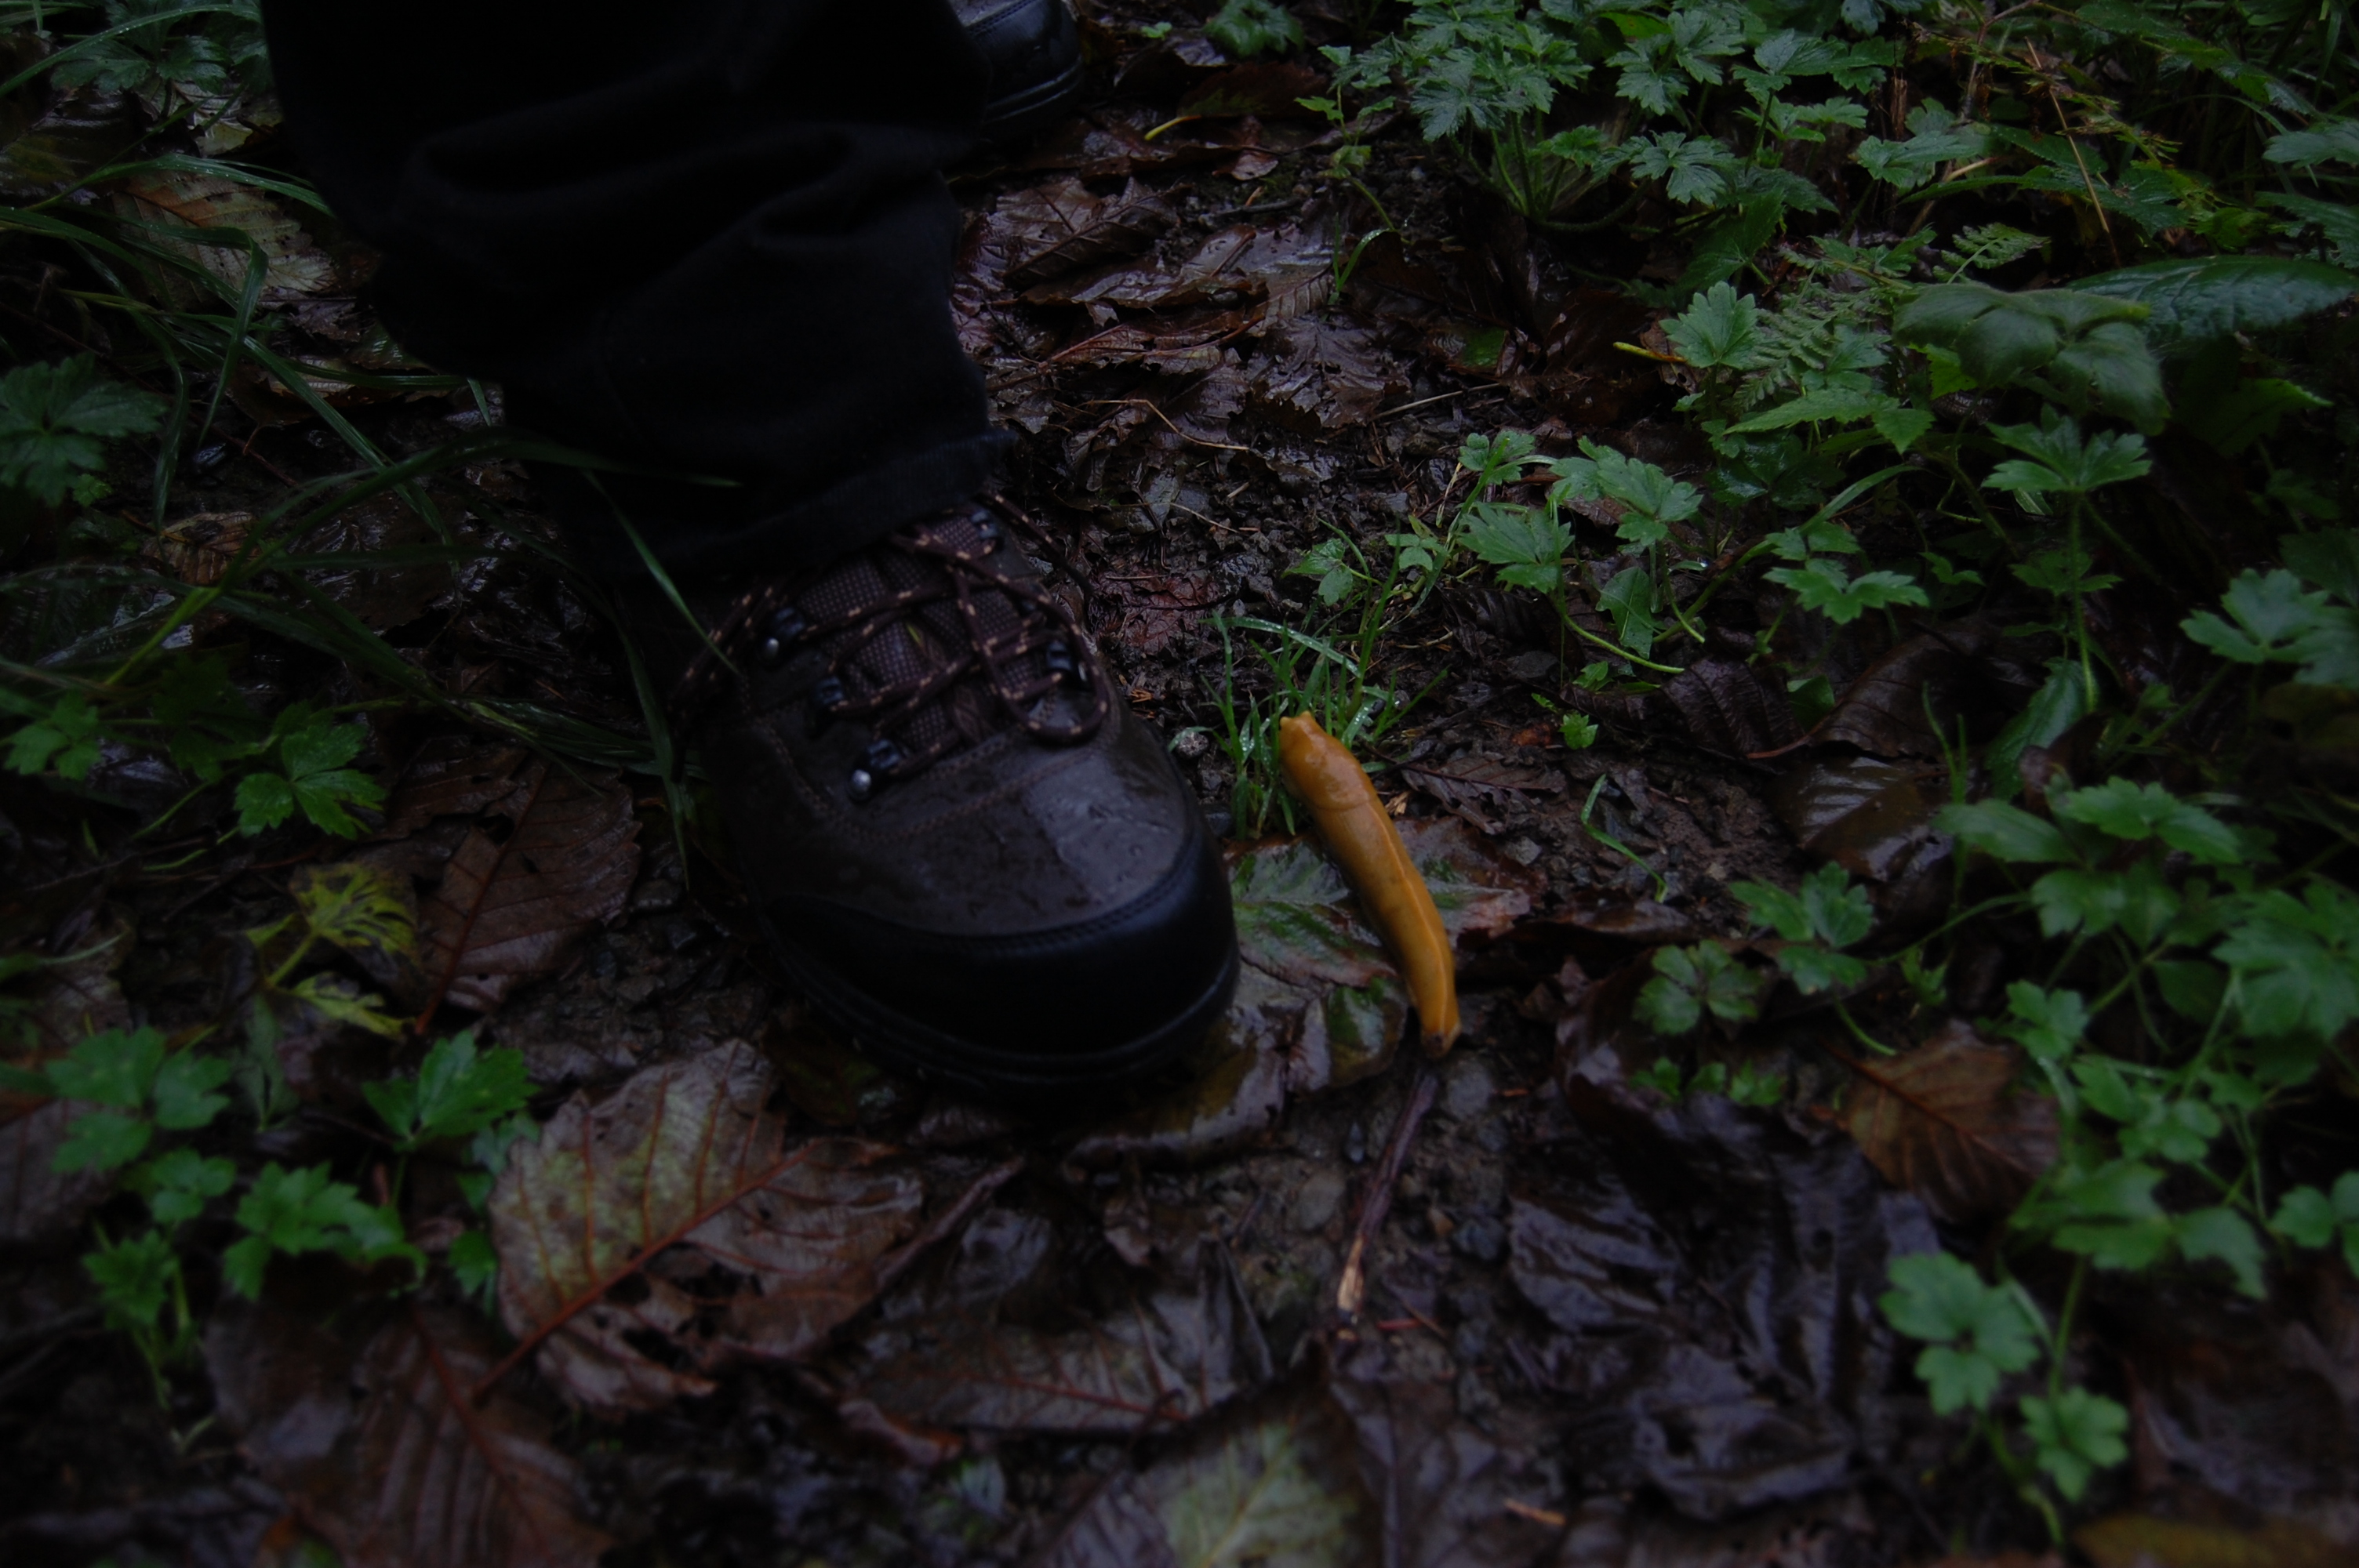 Banana slug for scale